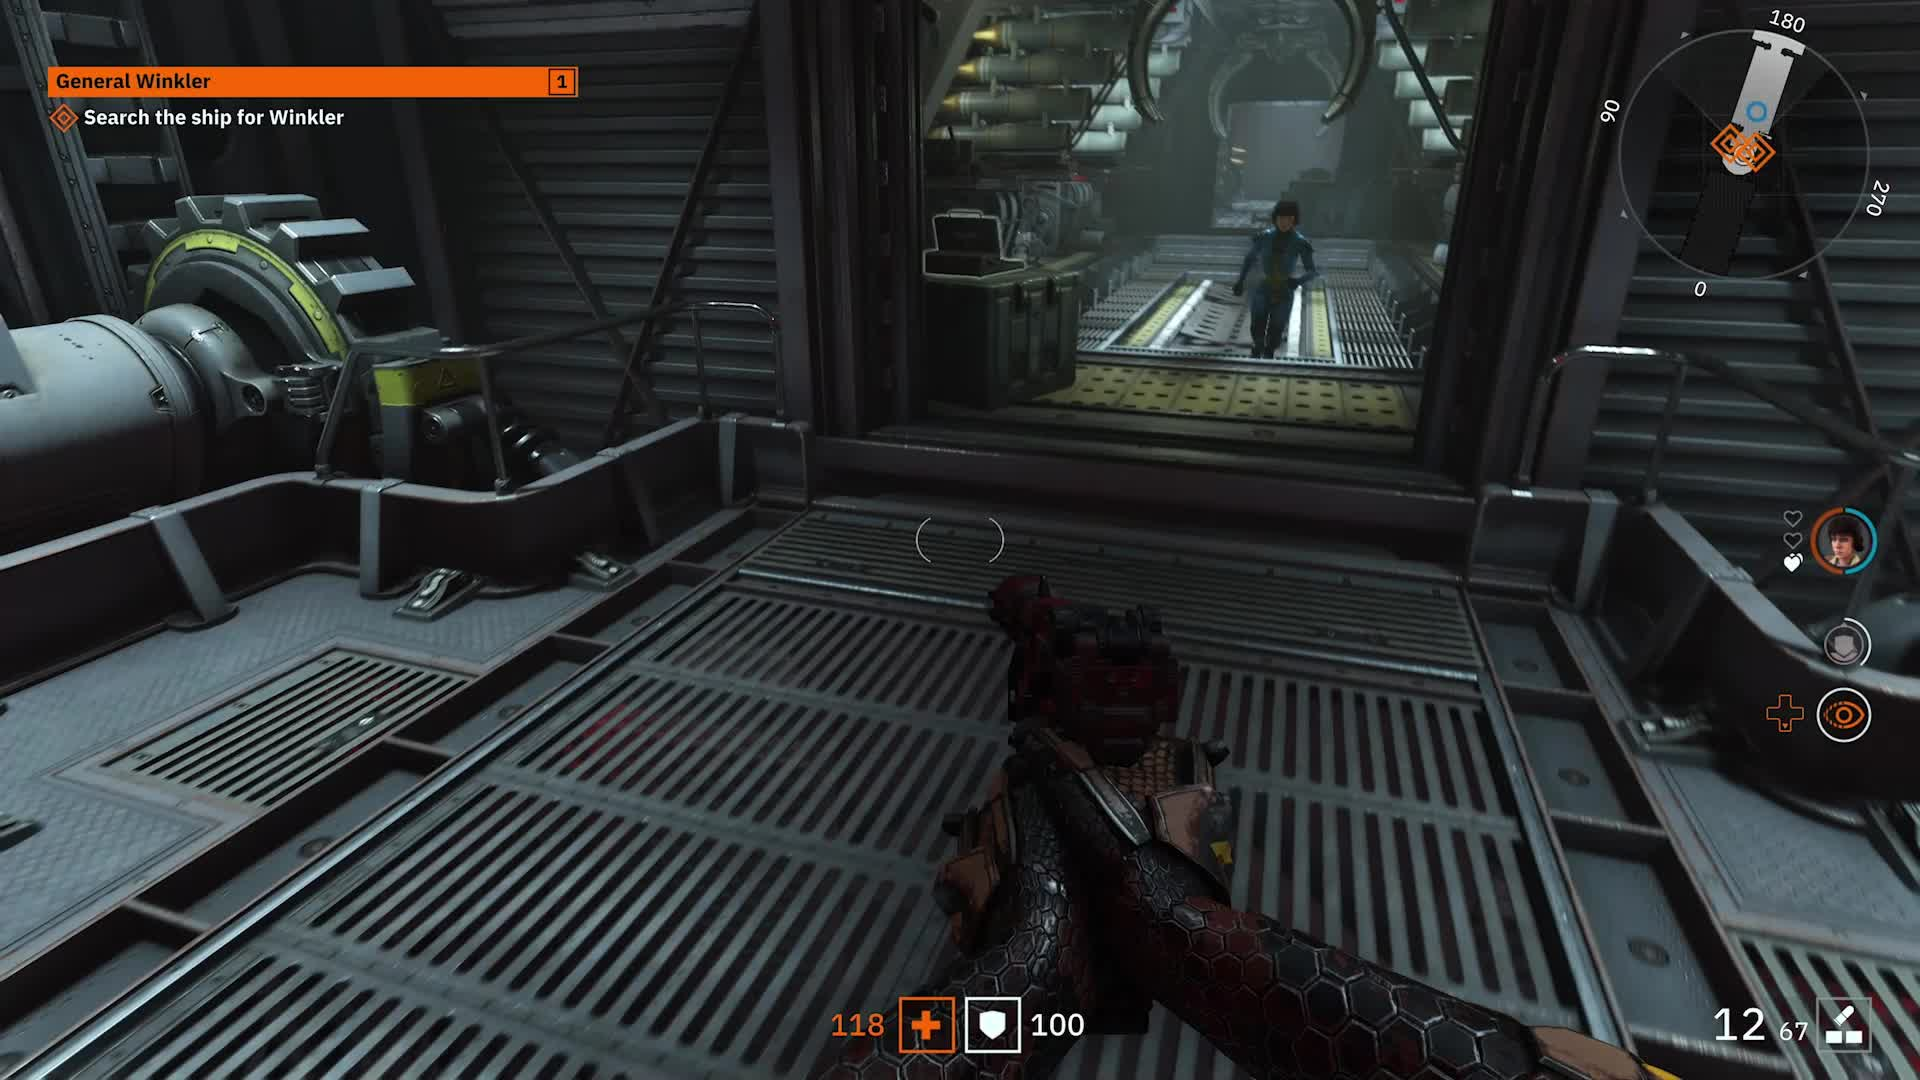 vlc-record-2019-06-10-07h21m21s-Wolfenstein Youngblood.mp4- GIFs